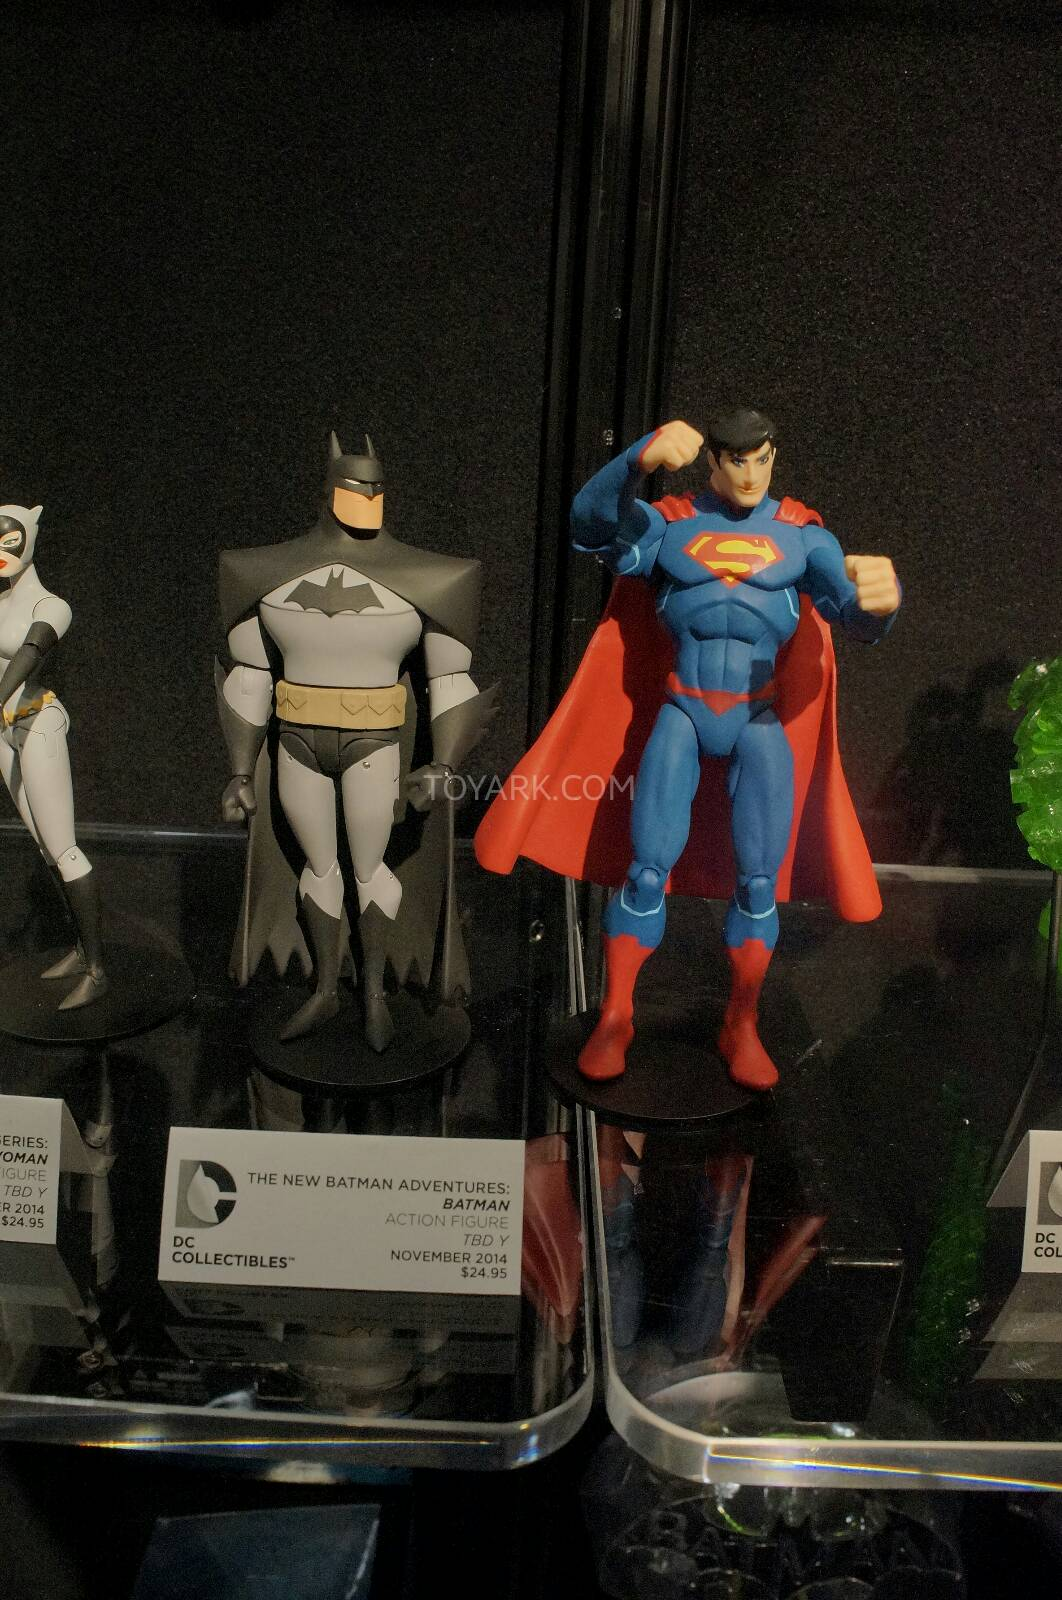 [Toy Fair 2014] DC Collectibles Toy-Fair-2014-DC-Collectibles-150